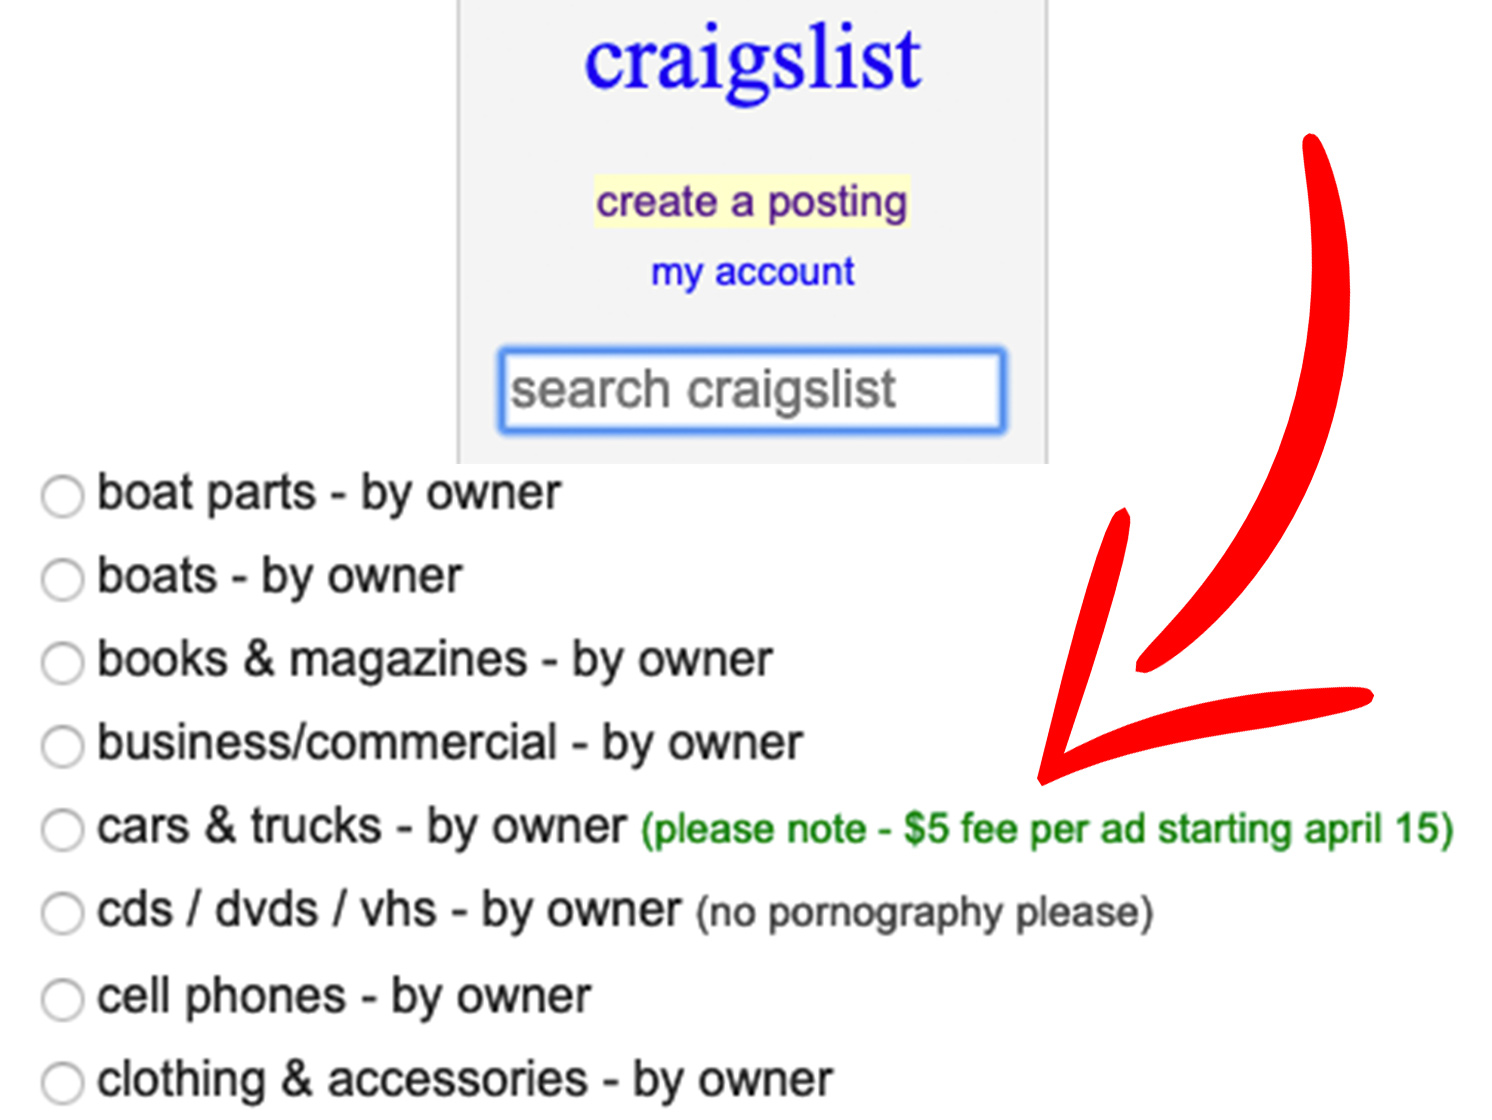 Craigslist car listings will cost private sellers $5 beginning April 15 thumbnail